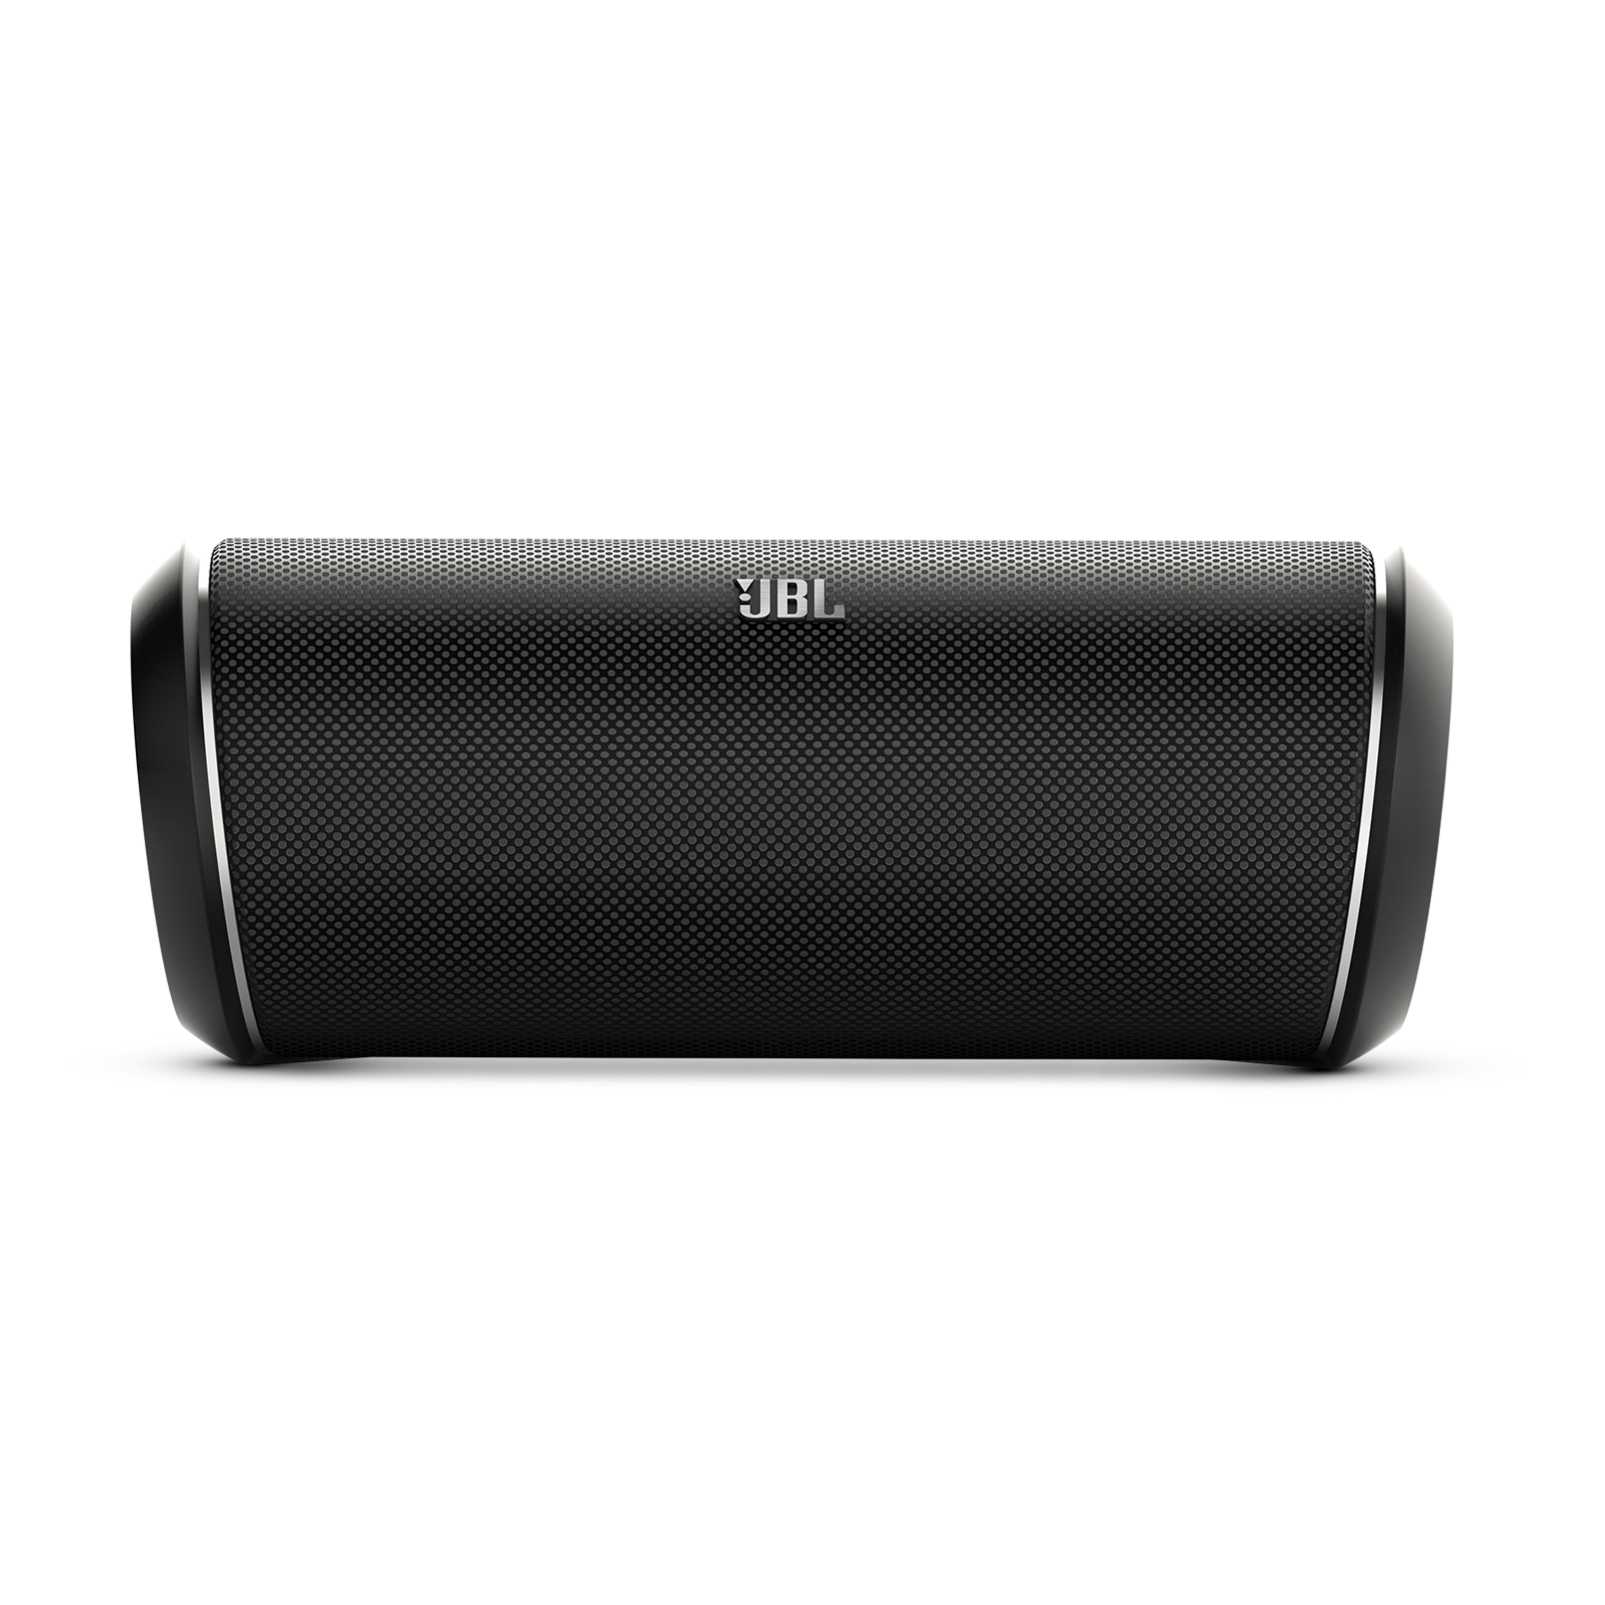 Jbl Flip 2 Portable Bluetooth Speaker With Microphone Usb Charging Original Kabel Data Xiaomi Micro Redmi 3 4 Note